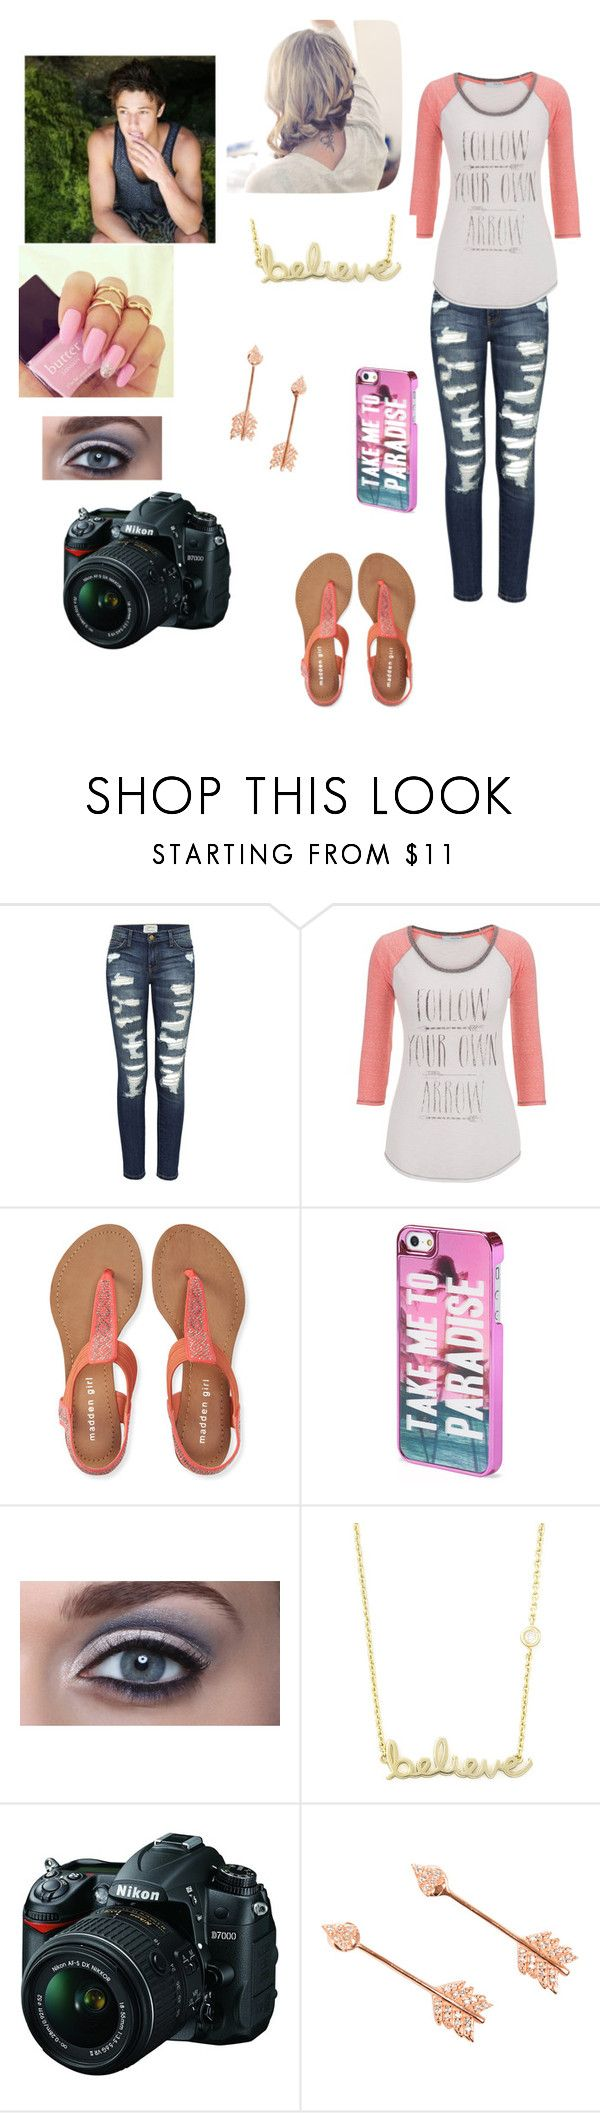 """""""Photoshoot with Cameron Dallas"""" by cherylkinberg97 ❤ liked on Polyvore featuring Current/Elliott, maurices, Aéropostale, Sydney Evan, Nikon and Pamela Love"""